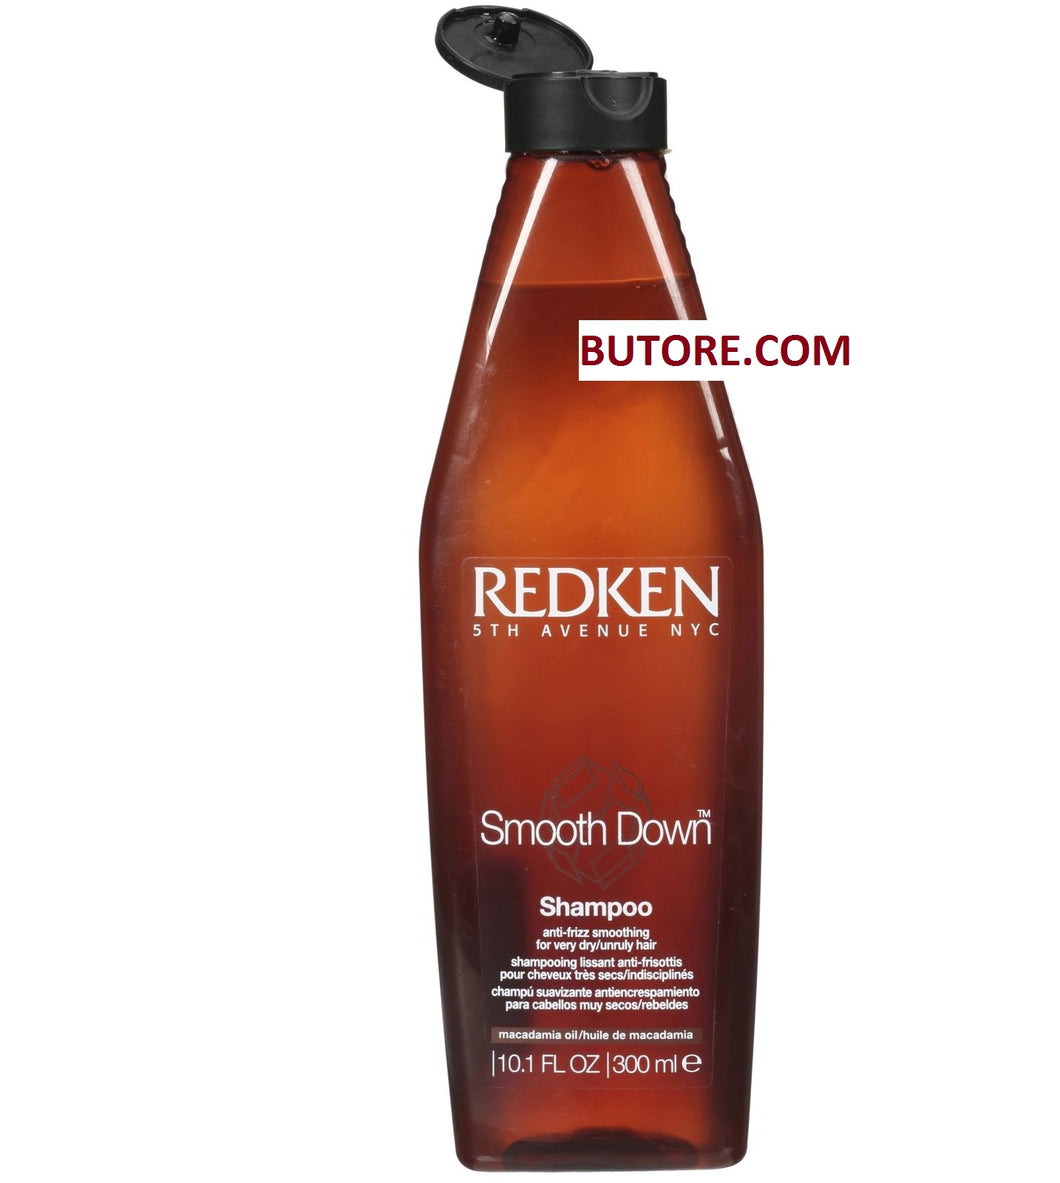 REDKEN SMOOTH DOWN SHAMPOO Anti-Frizz Dry Unruly Hair 8.5 Oz